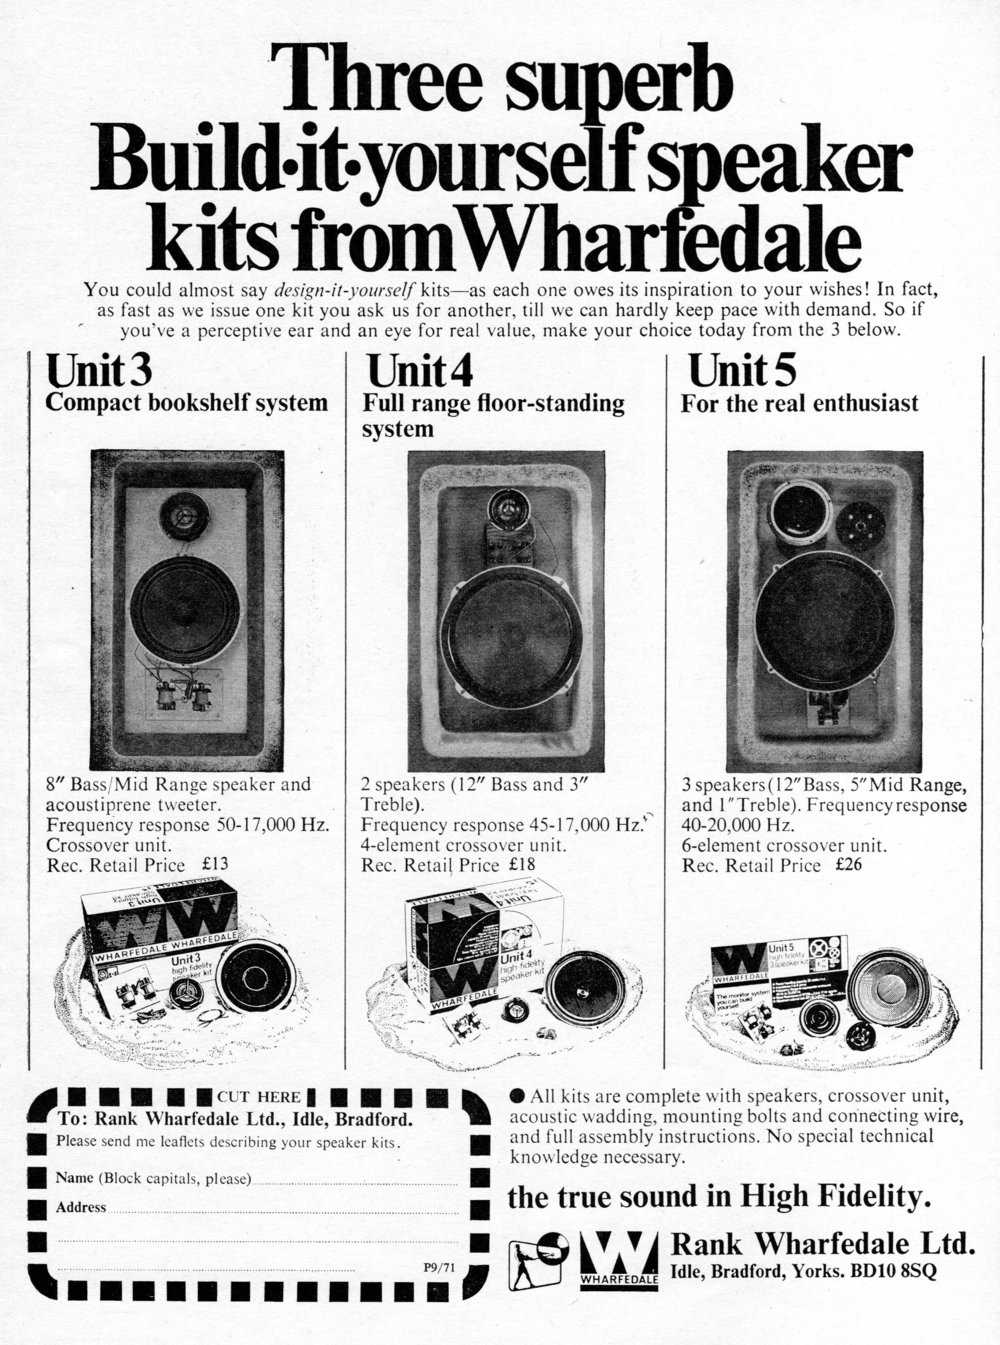 Wharfedale Unit 3, Unit 4, Unit 5 Kits Advert 1971.jpg